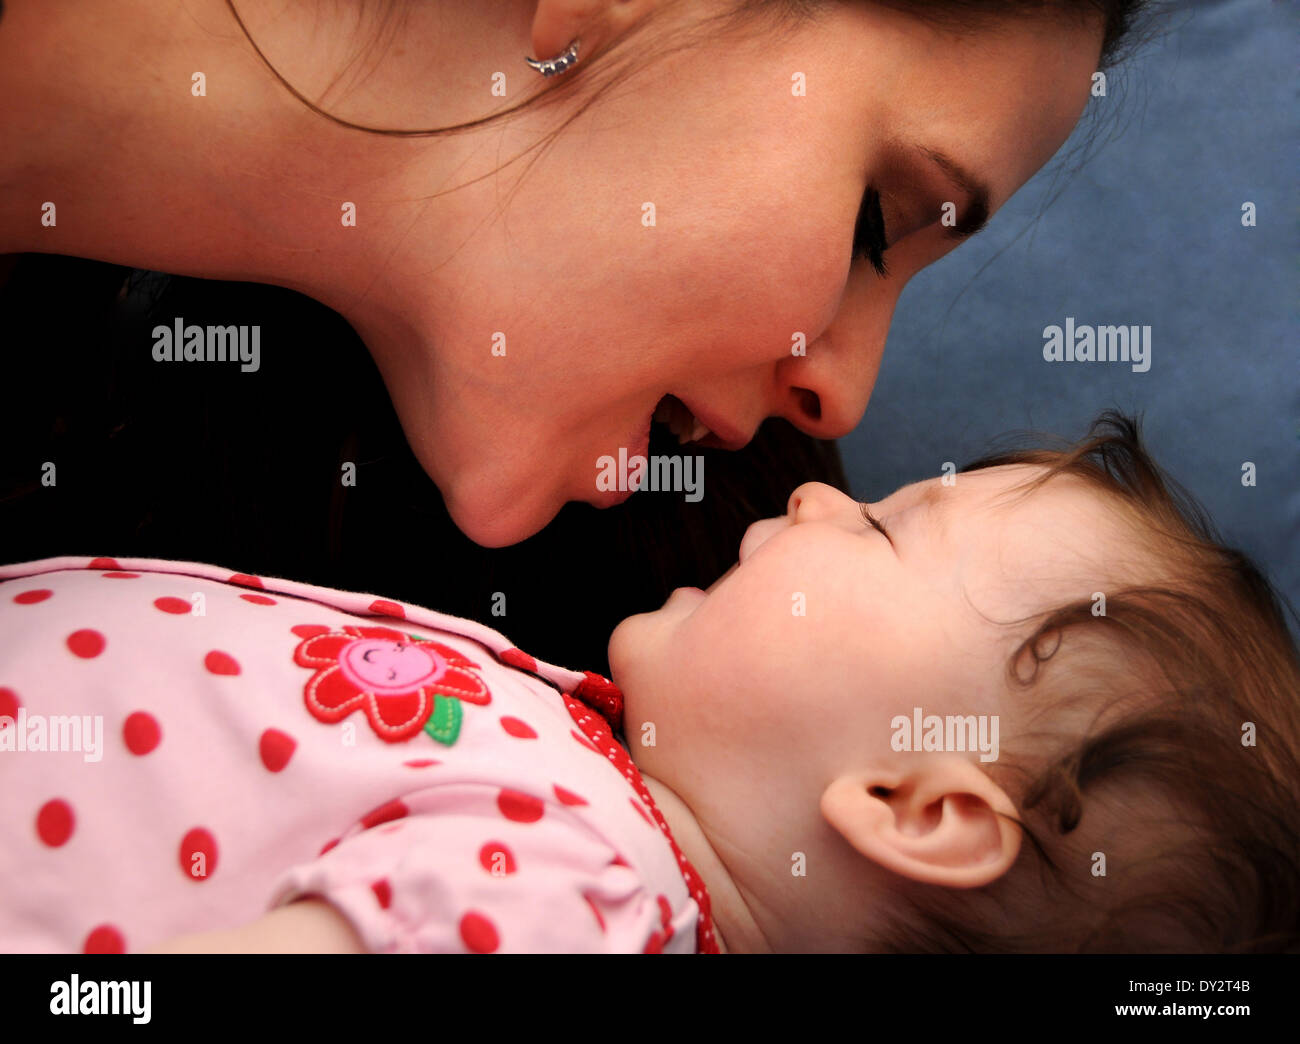 An infant with her mother. Stock Photo